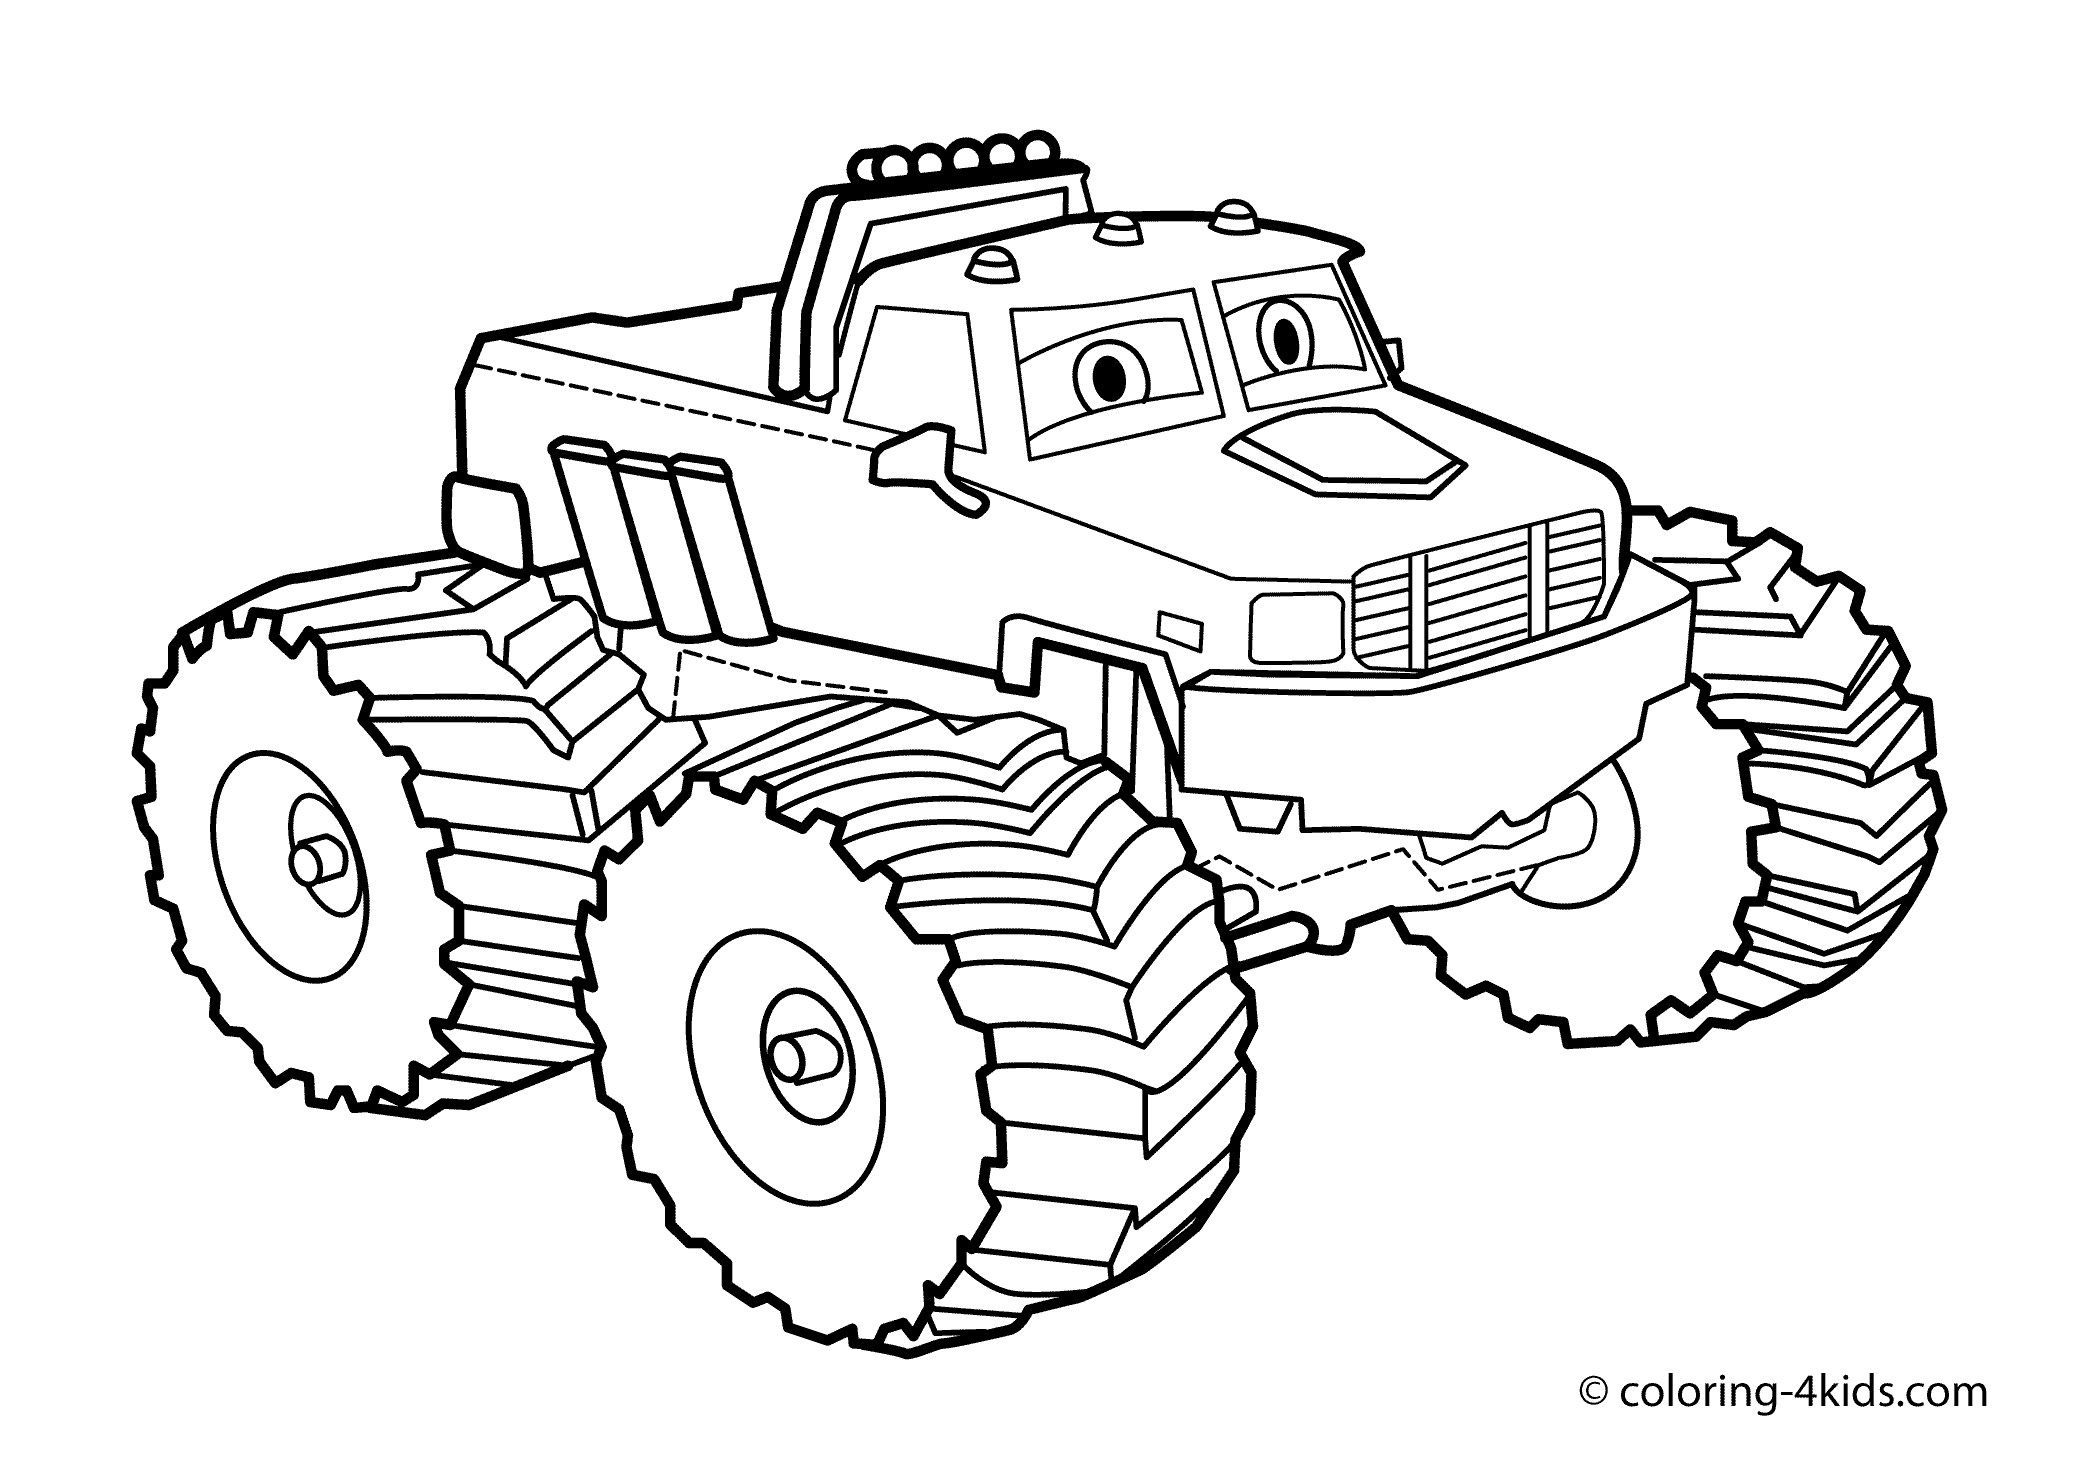 Wonderful Image Of Trucks Coloring Pages Davemelillo Com Monster Truck Coloring Pages Monster Coloring Pages Truck Coloring Pages